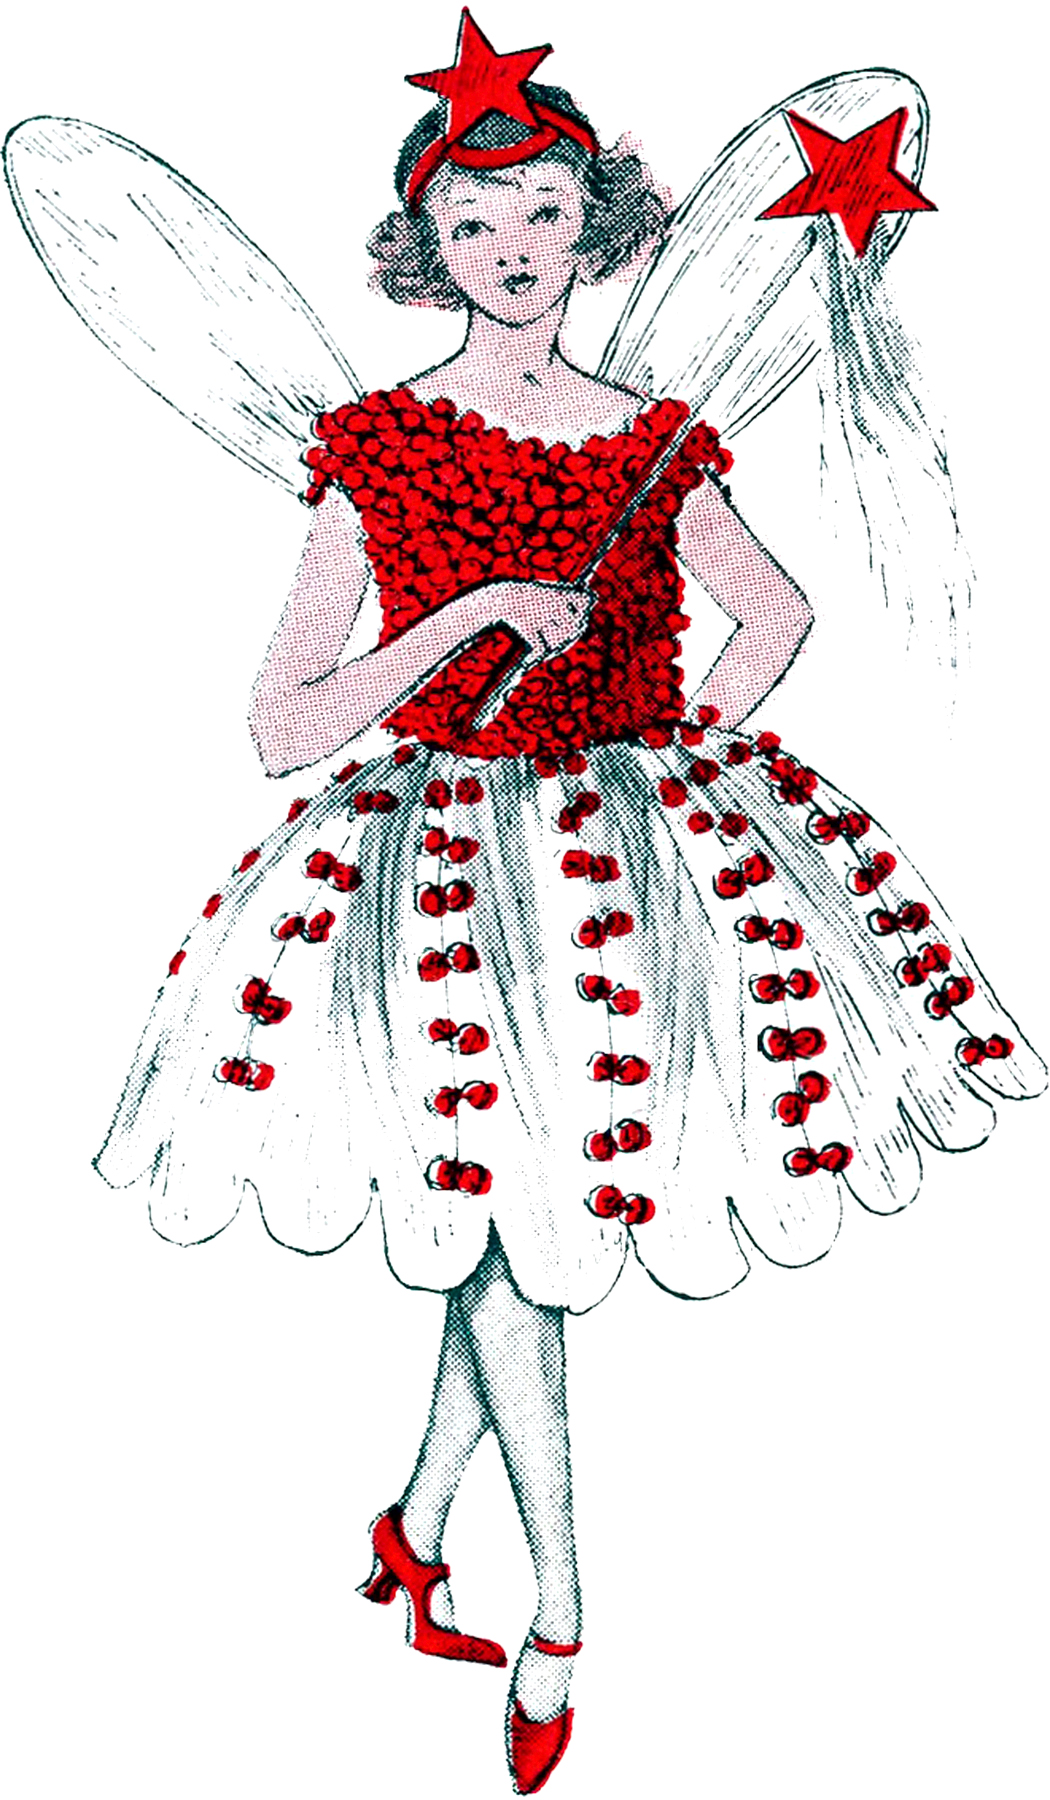 Christmas Fairy Image - The Graphics Fairy